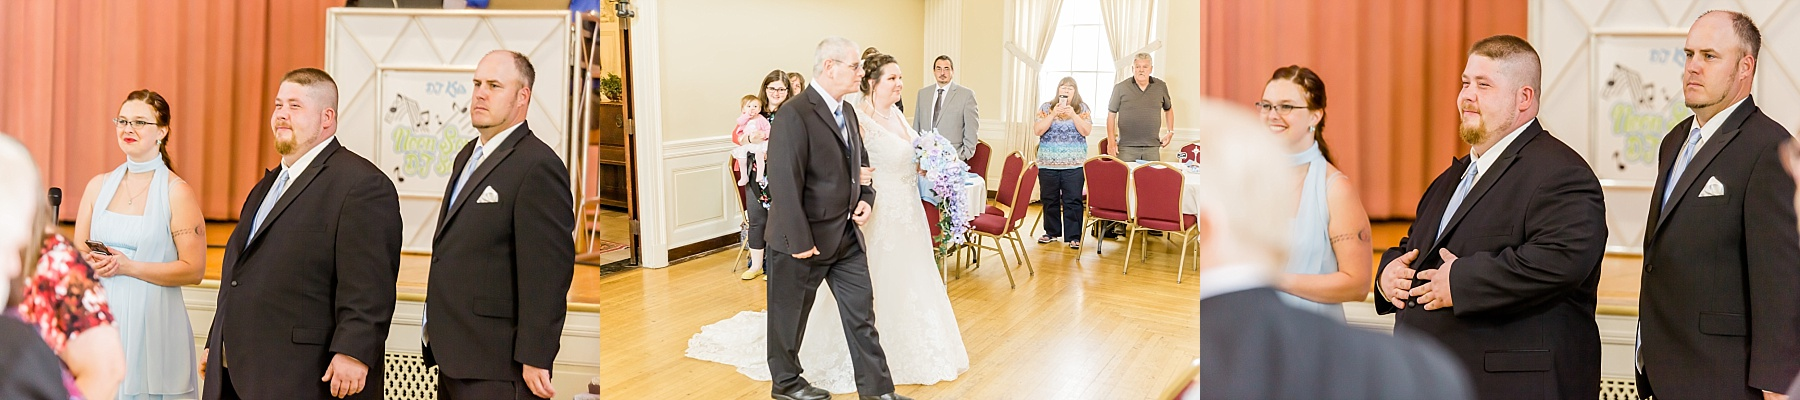 lafayette indiana wedding photographer photography thomas duncan hall_0131.jpg